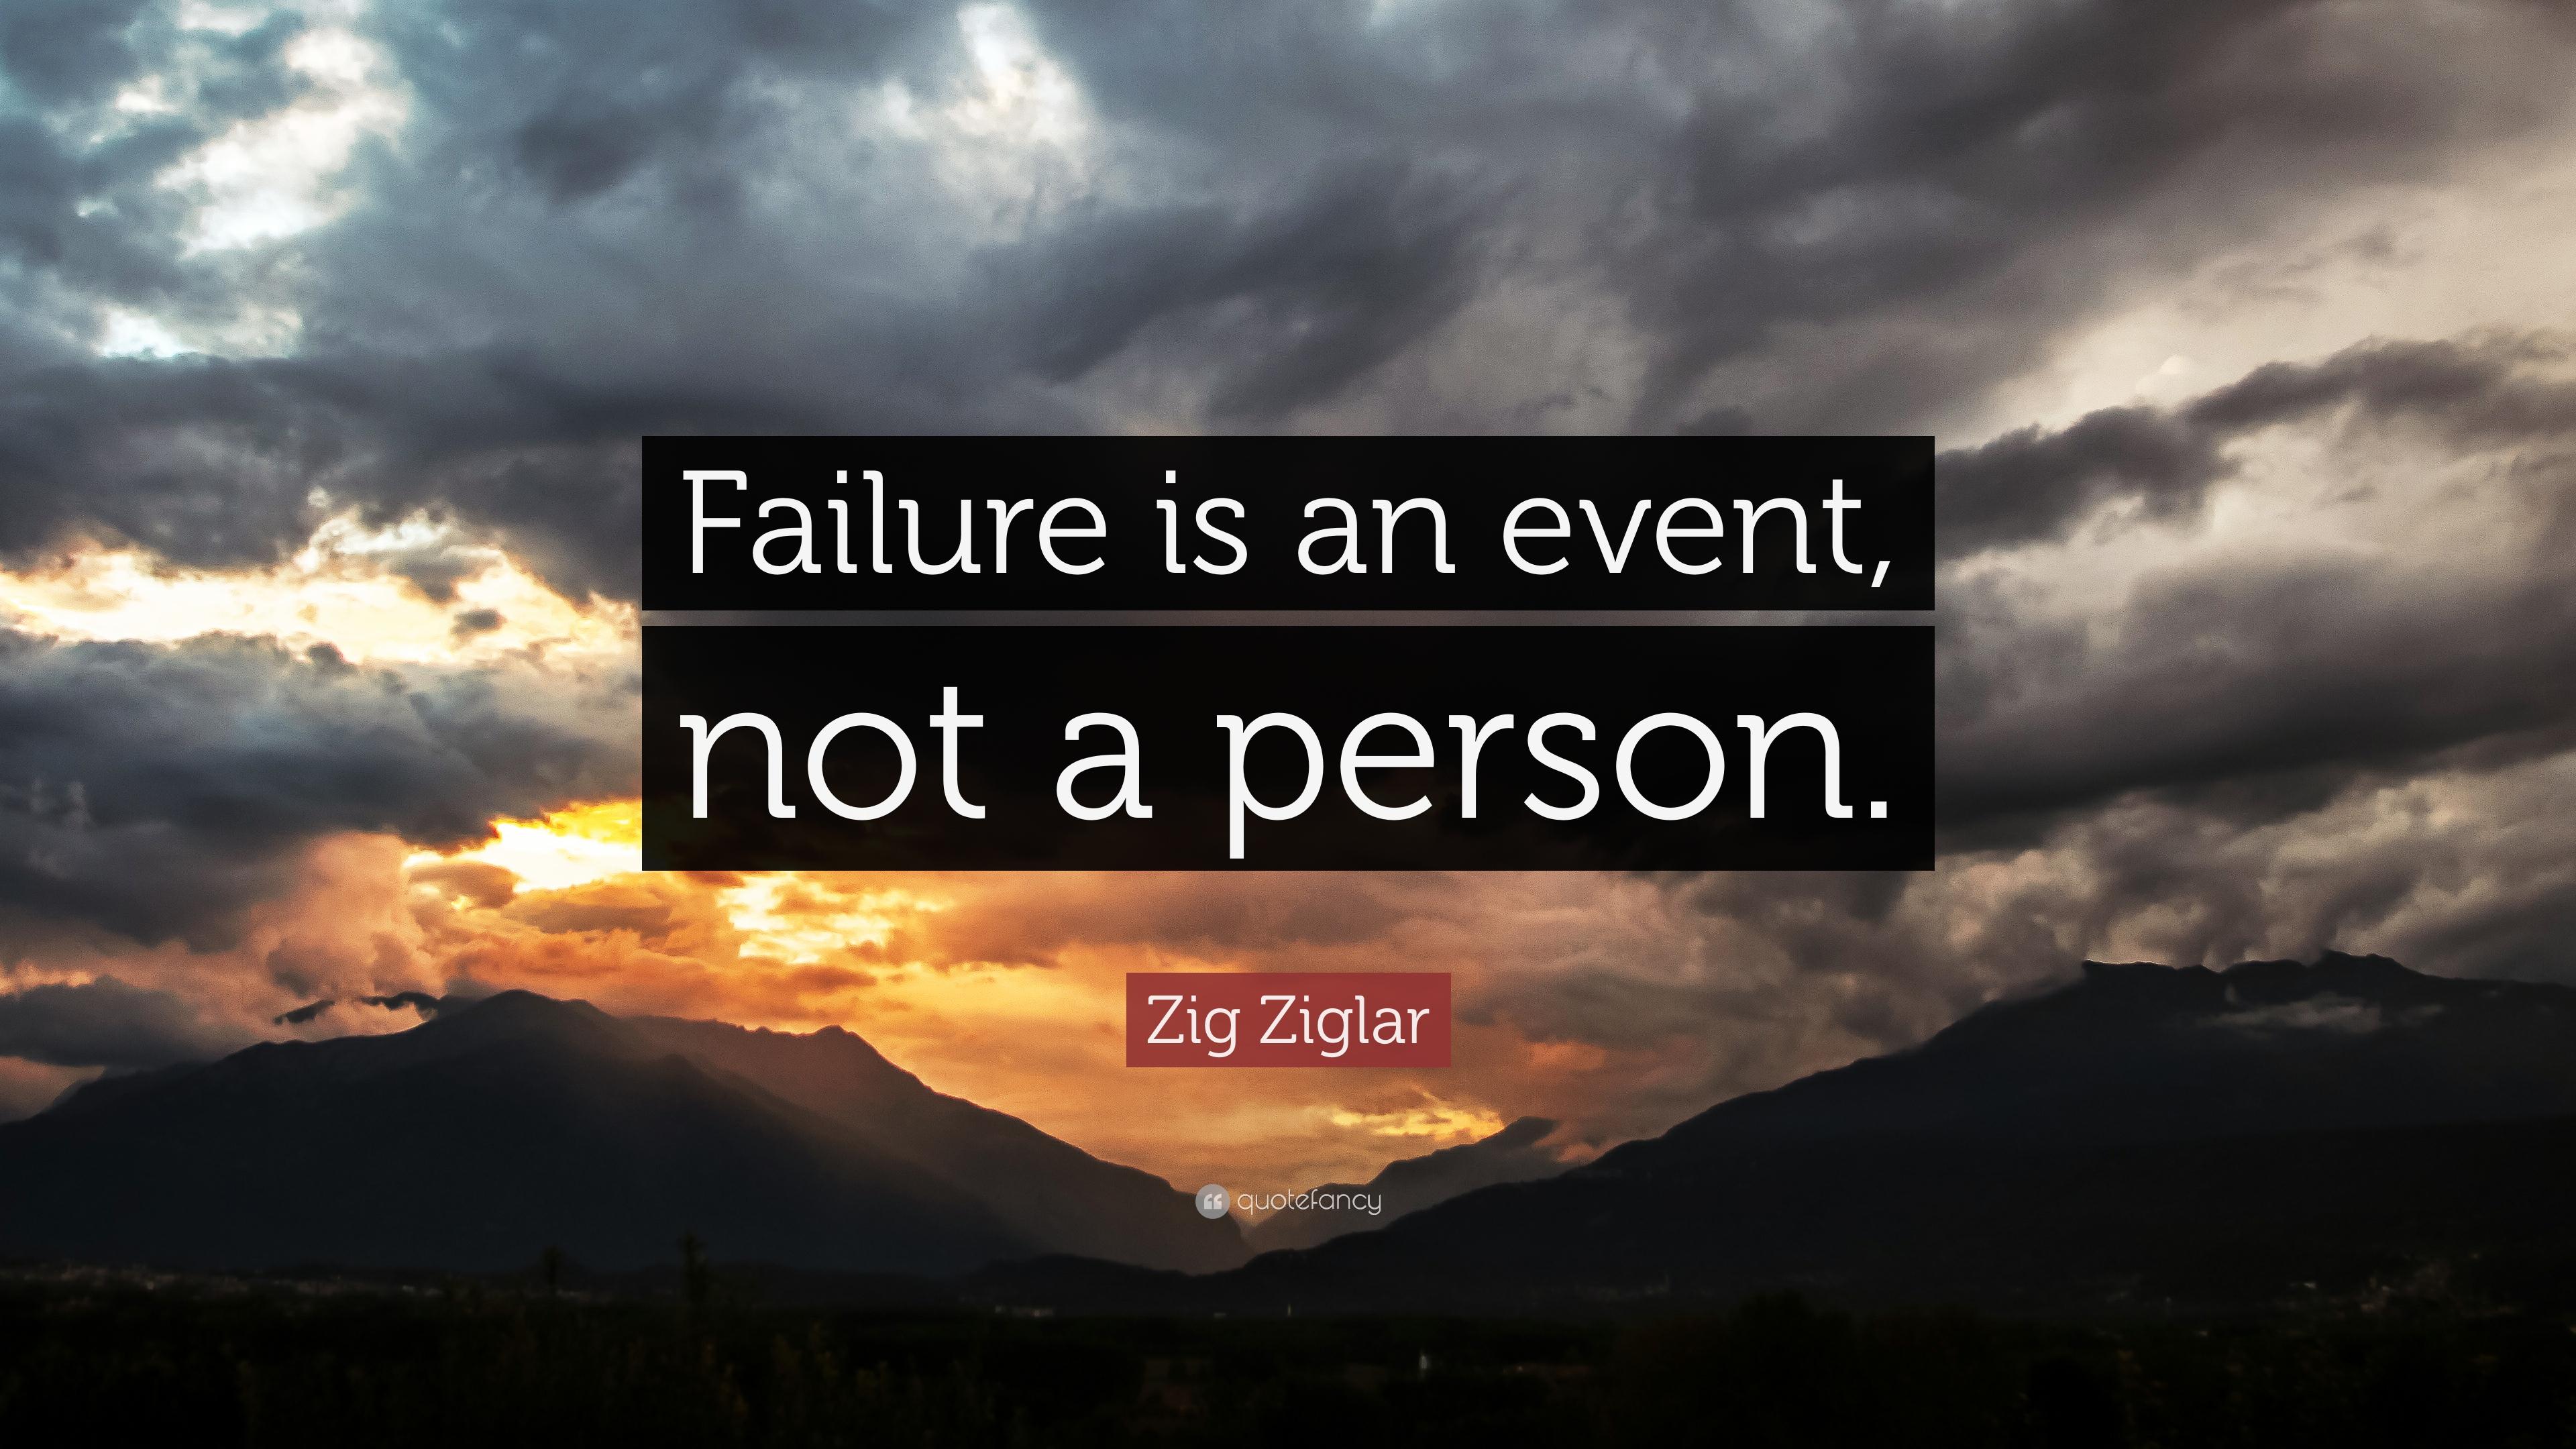 Quotes Zig Ziglar 8 Reasons You Should Be Happy When You Fail  Bewellhub